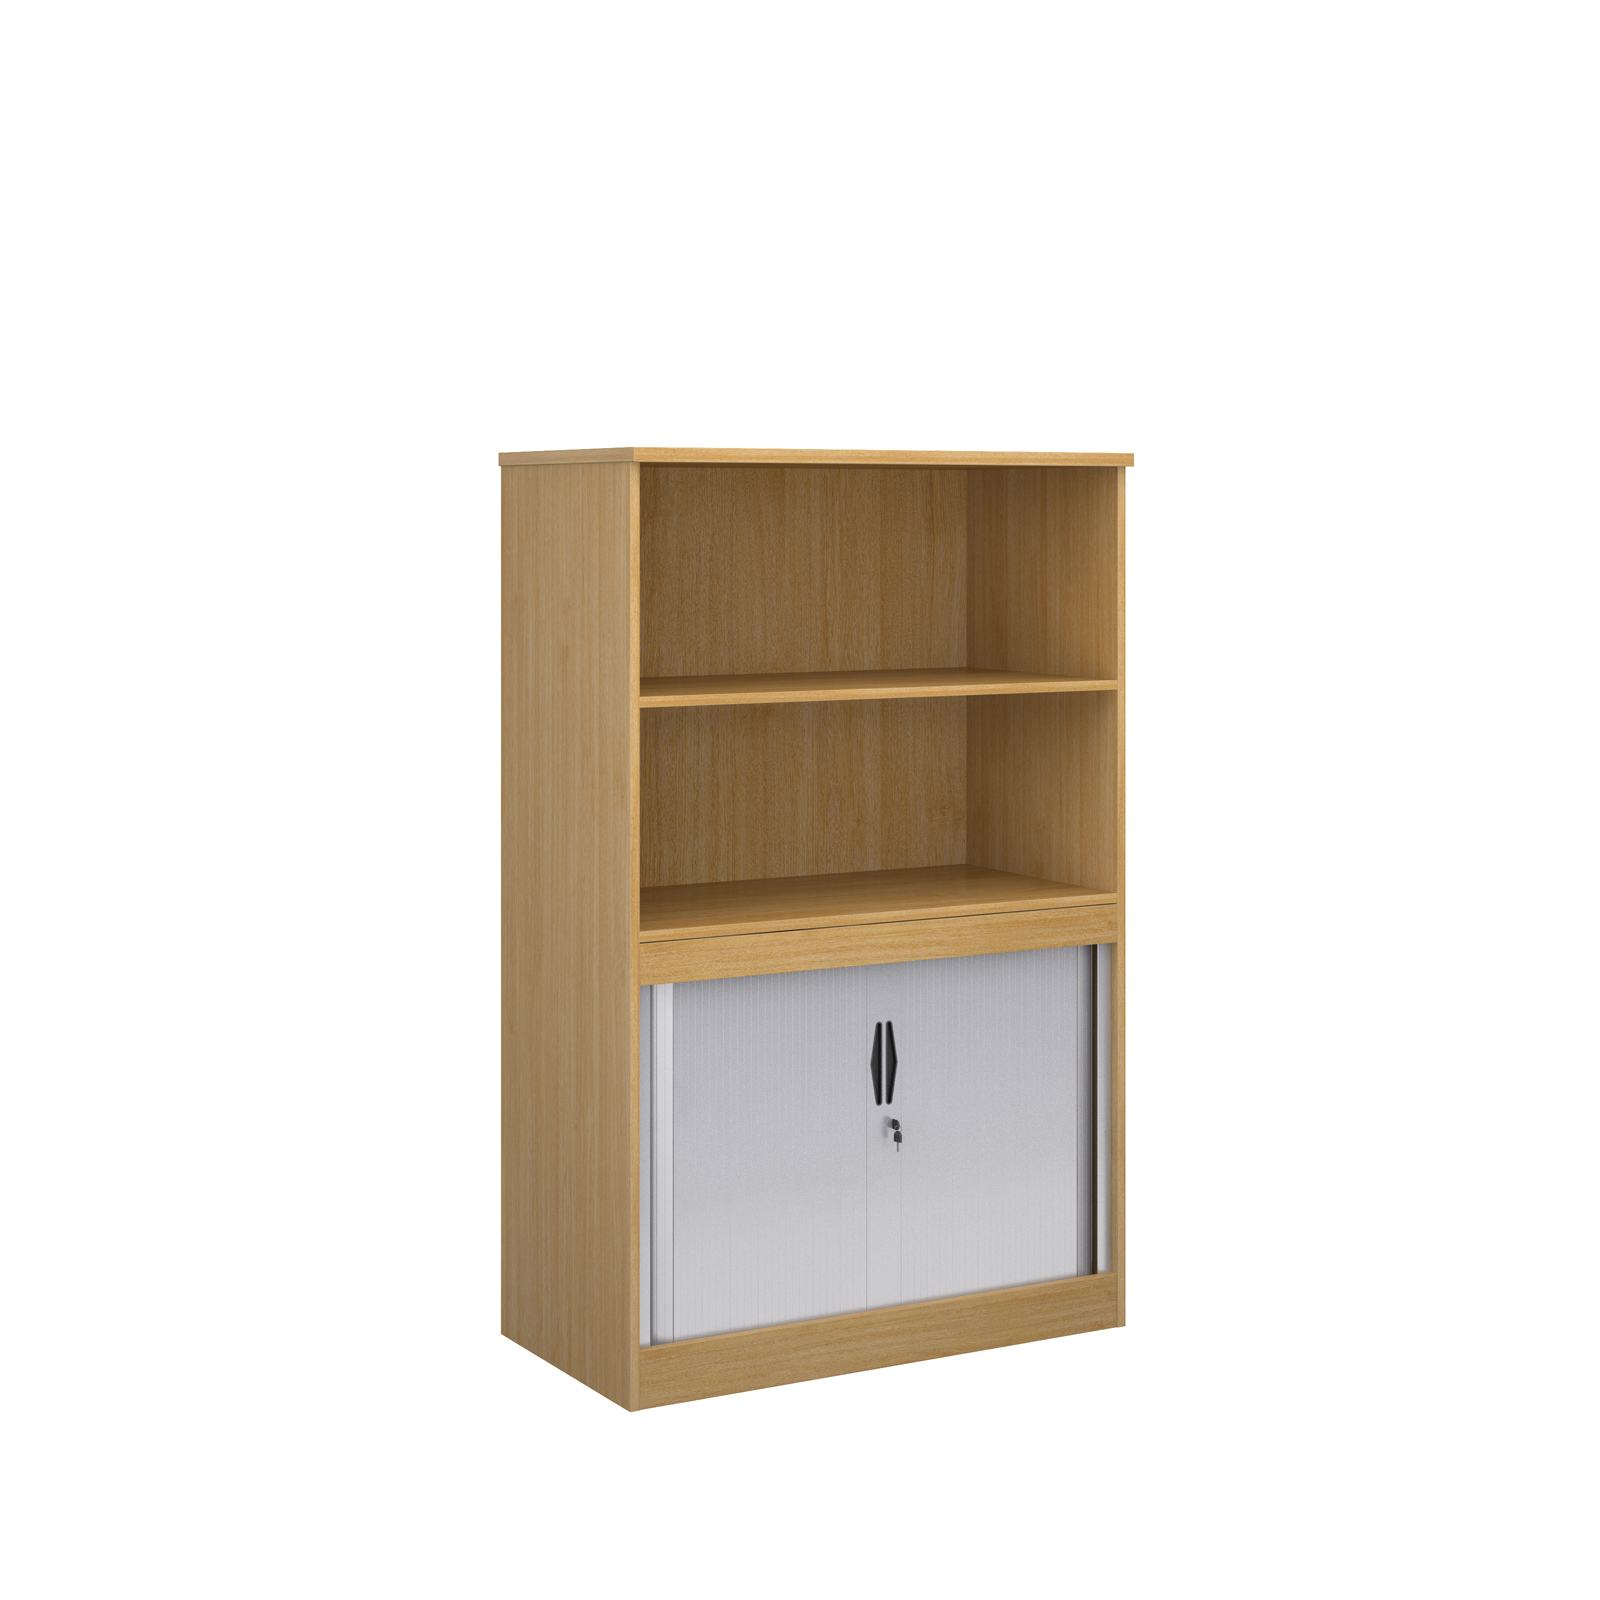 1600 System Storage half tambour, half cupboard in oak